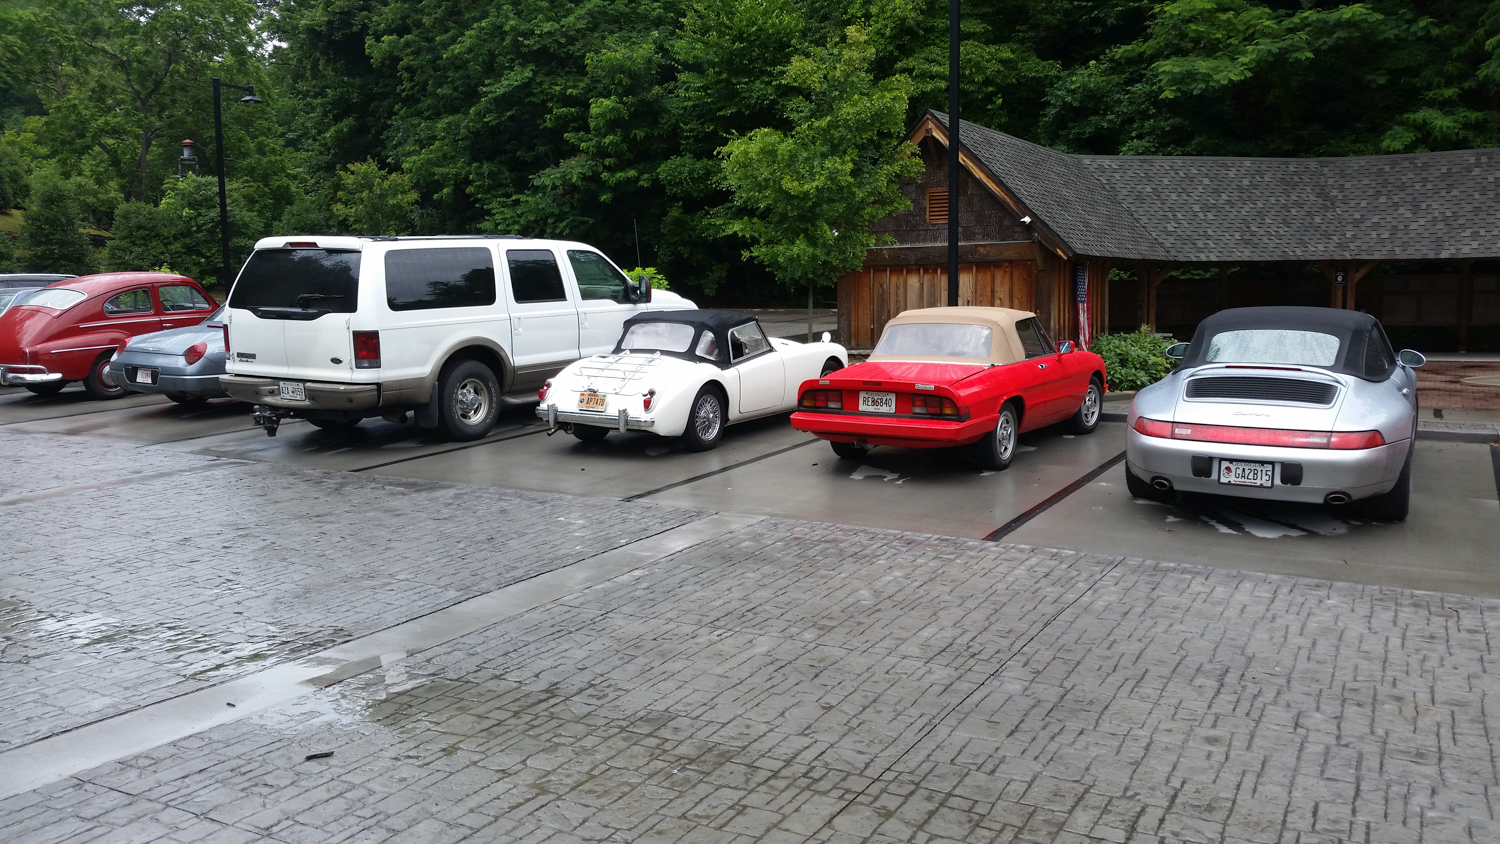 Parking at the Lodge for lunch. Not everyone drove their show car on the tour. The Ford Excursion was driven by a racer - you should see it in the hairpins.